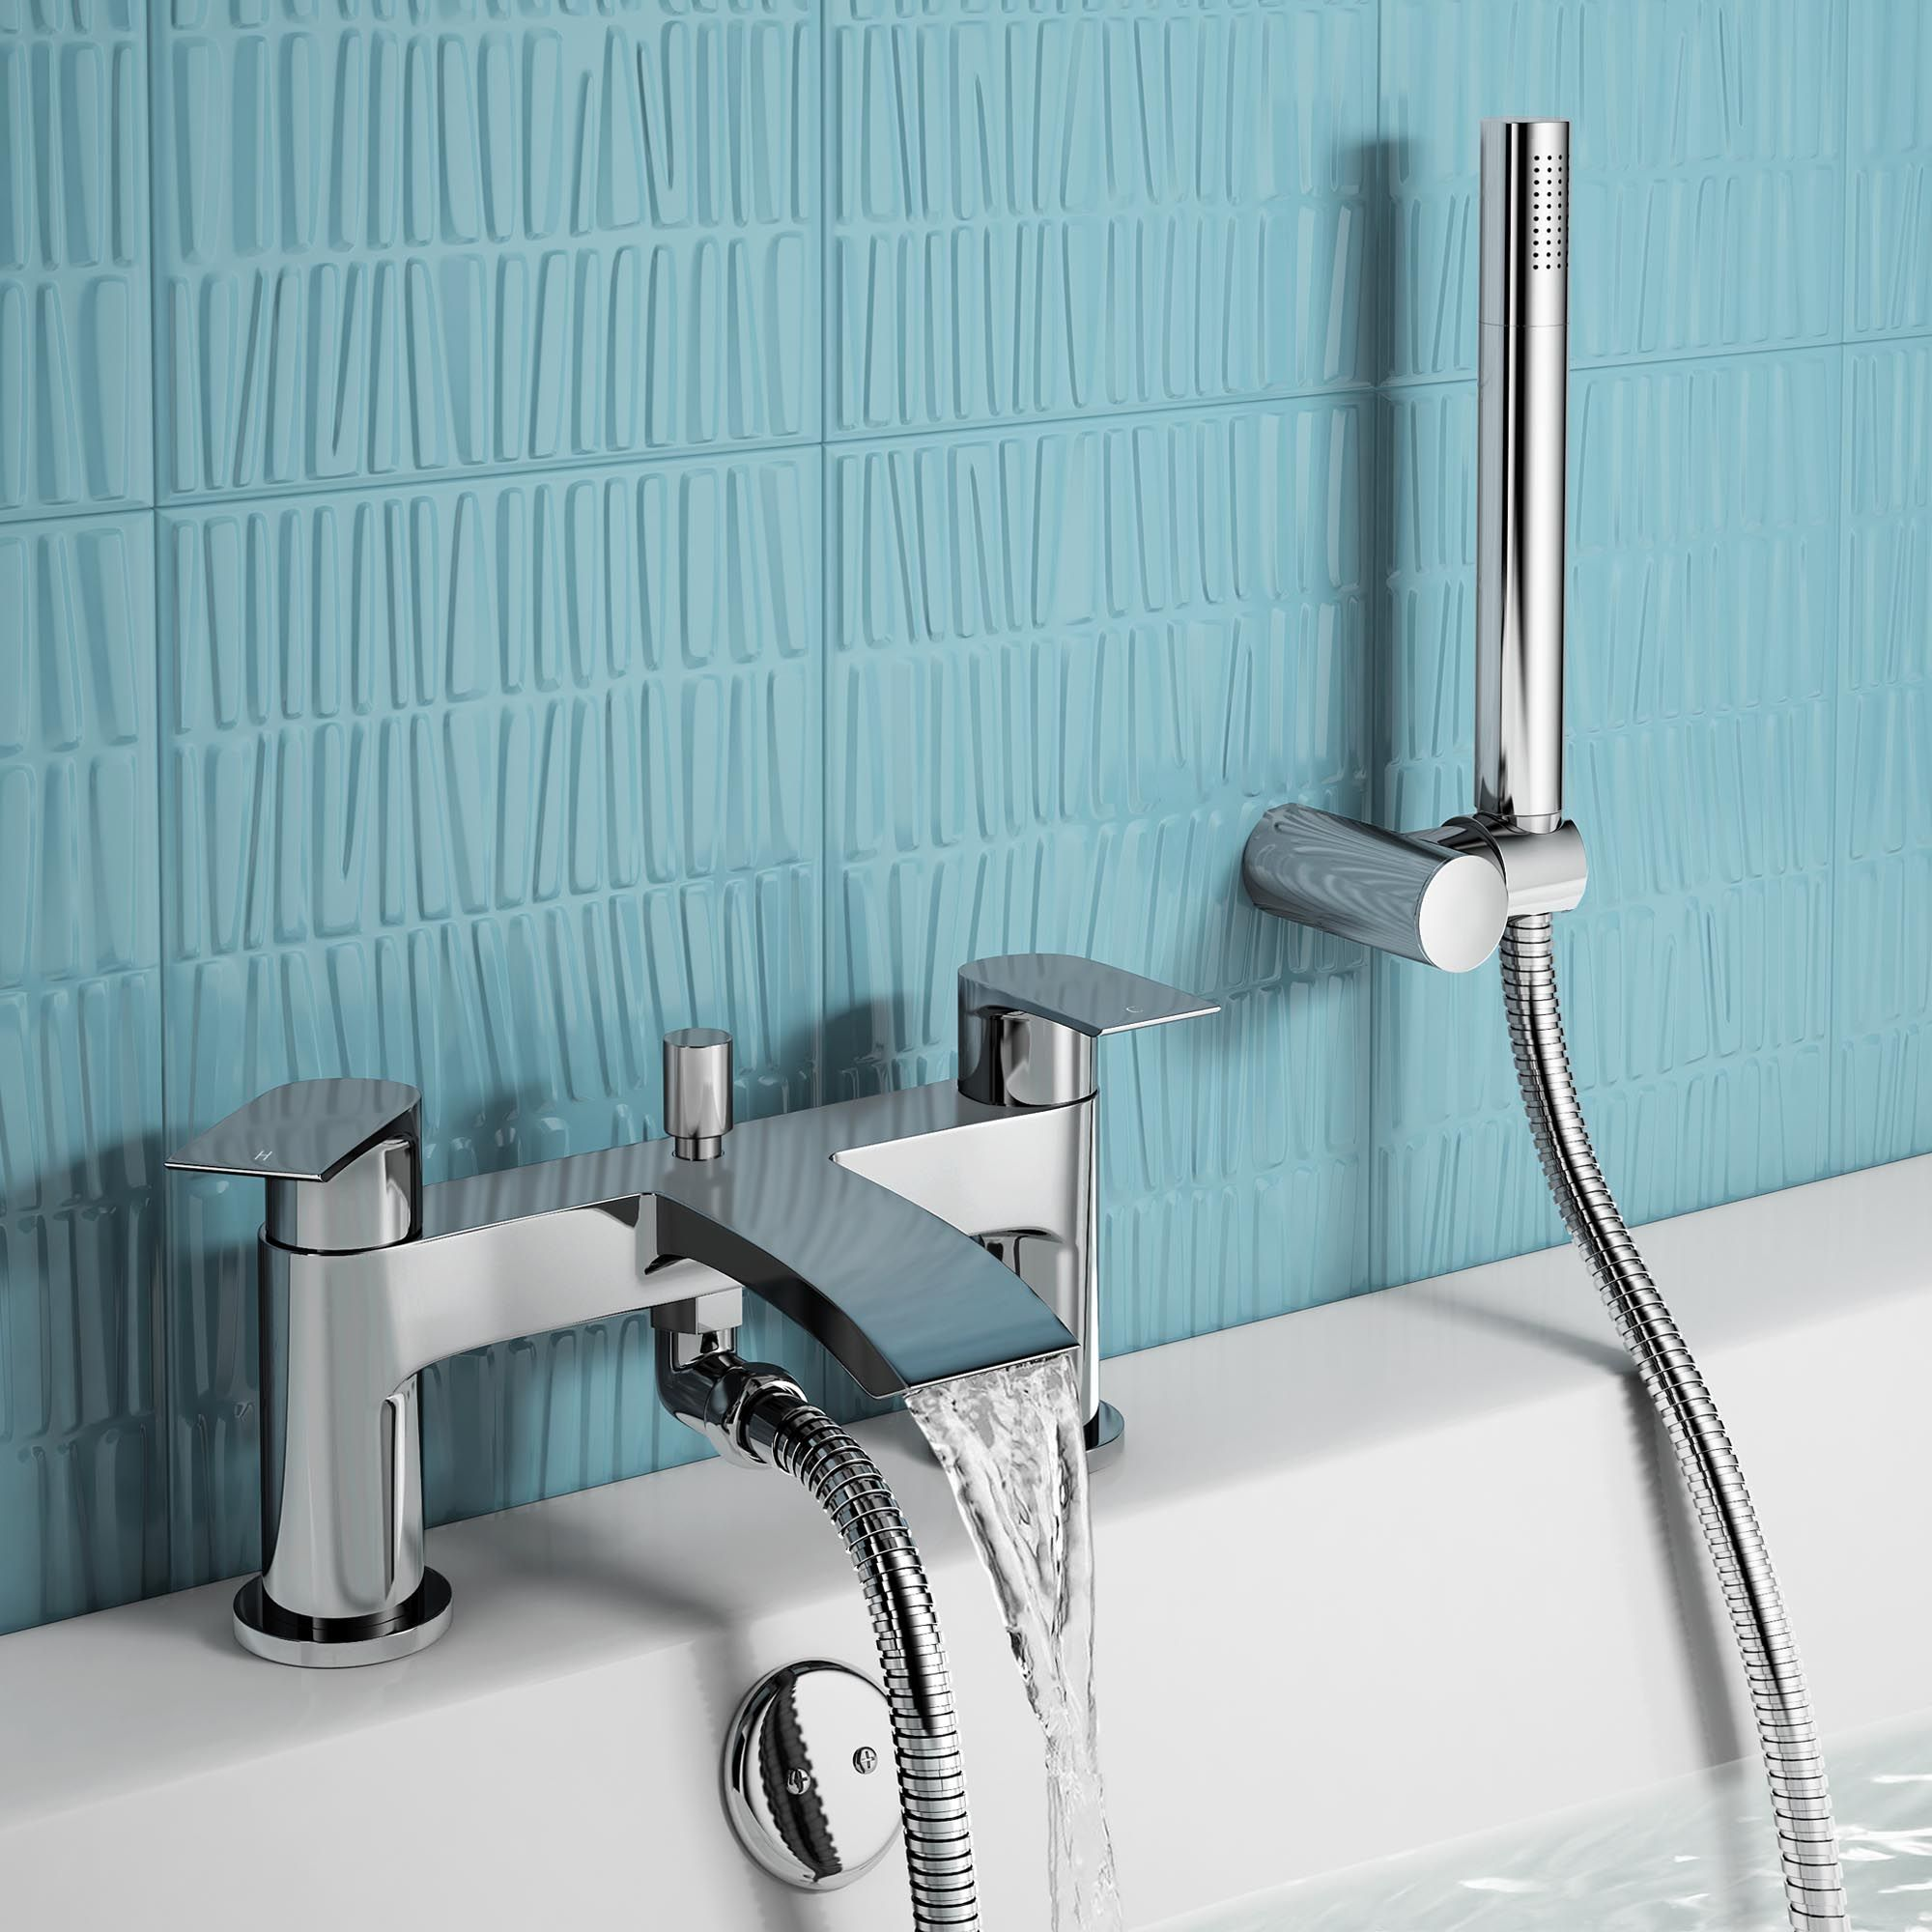 Nelas Bath Shower Mixer Tap with Hand Held Shower Head | Bath Tap ...